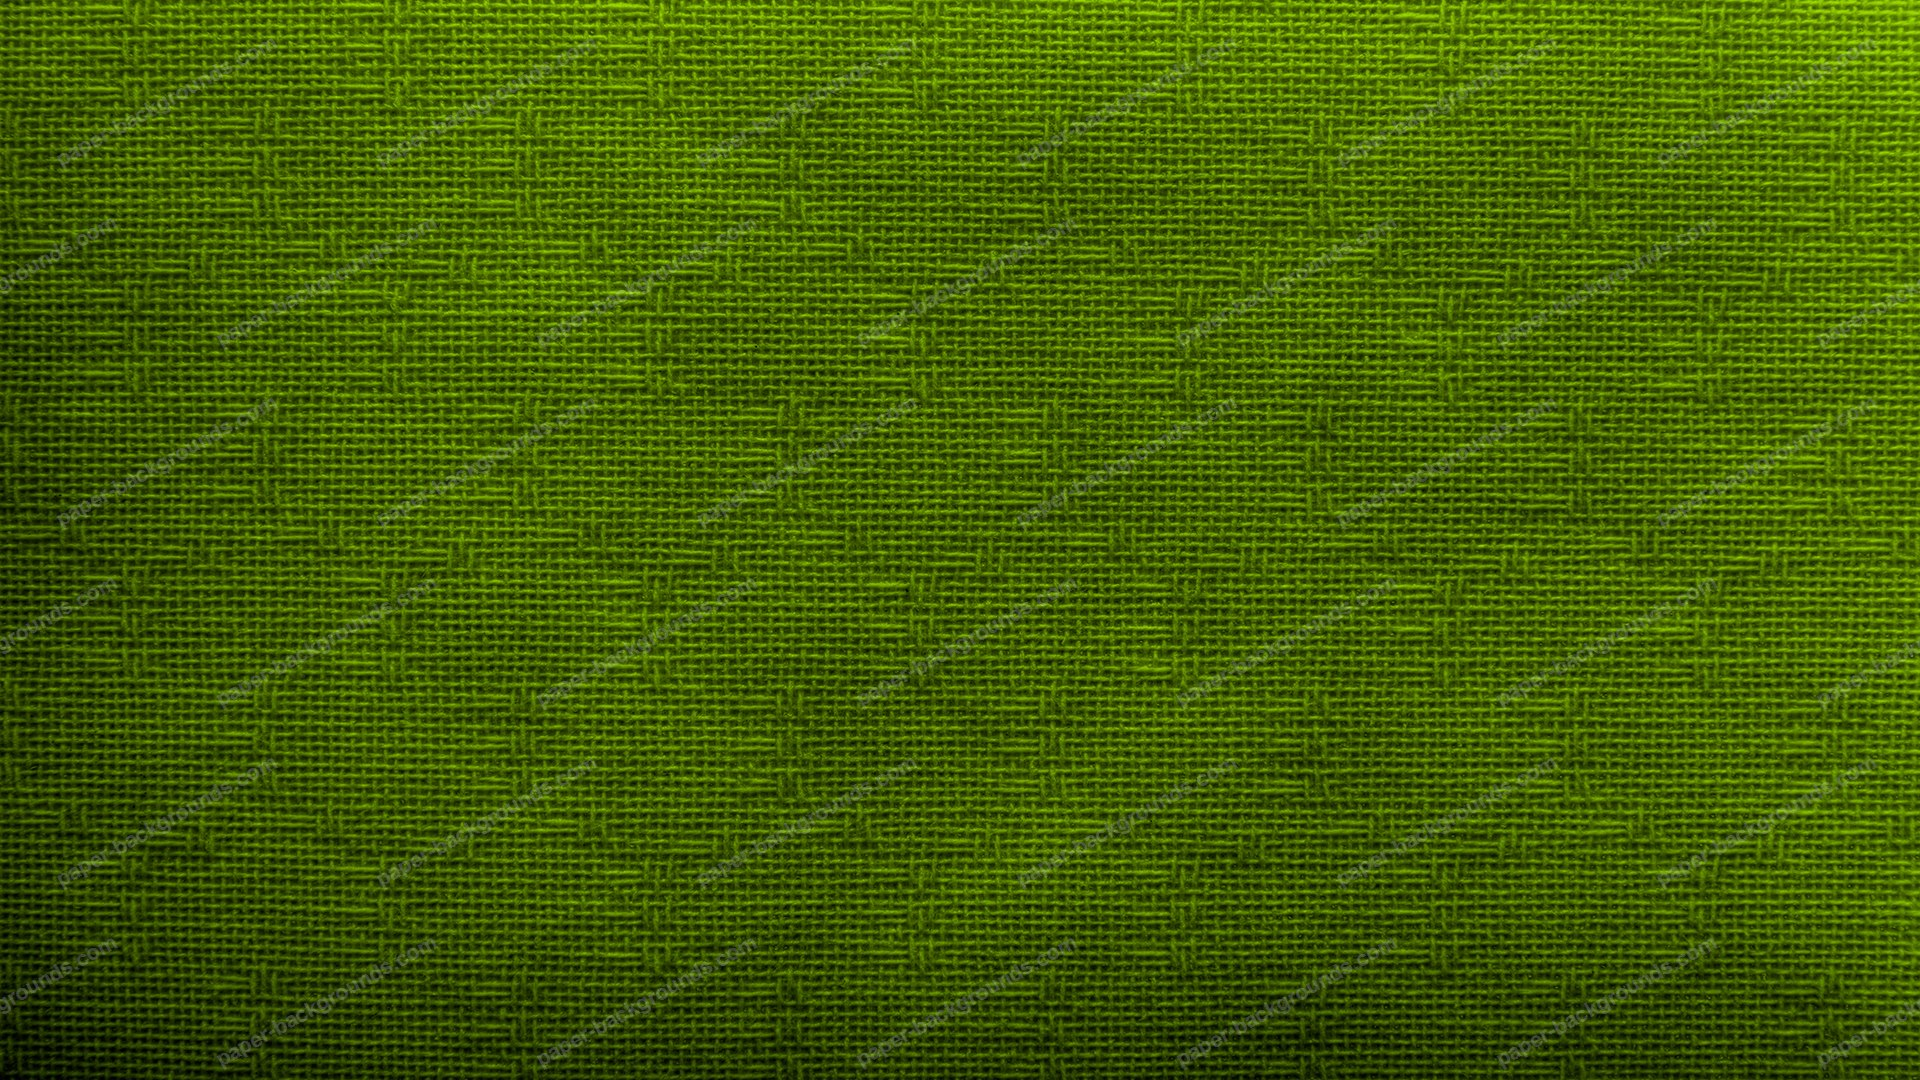 Lime Green Canvas Texture Background HD 1920 x 1080p